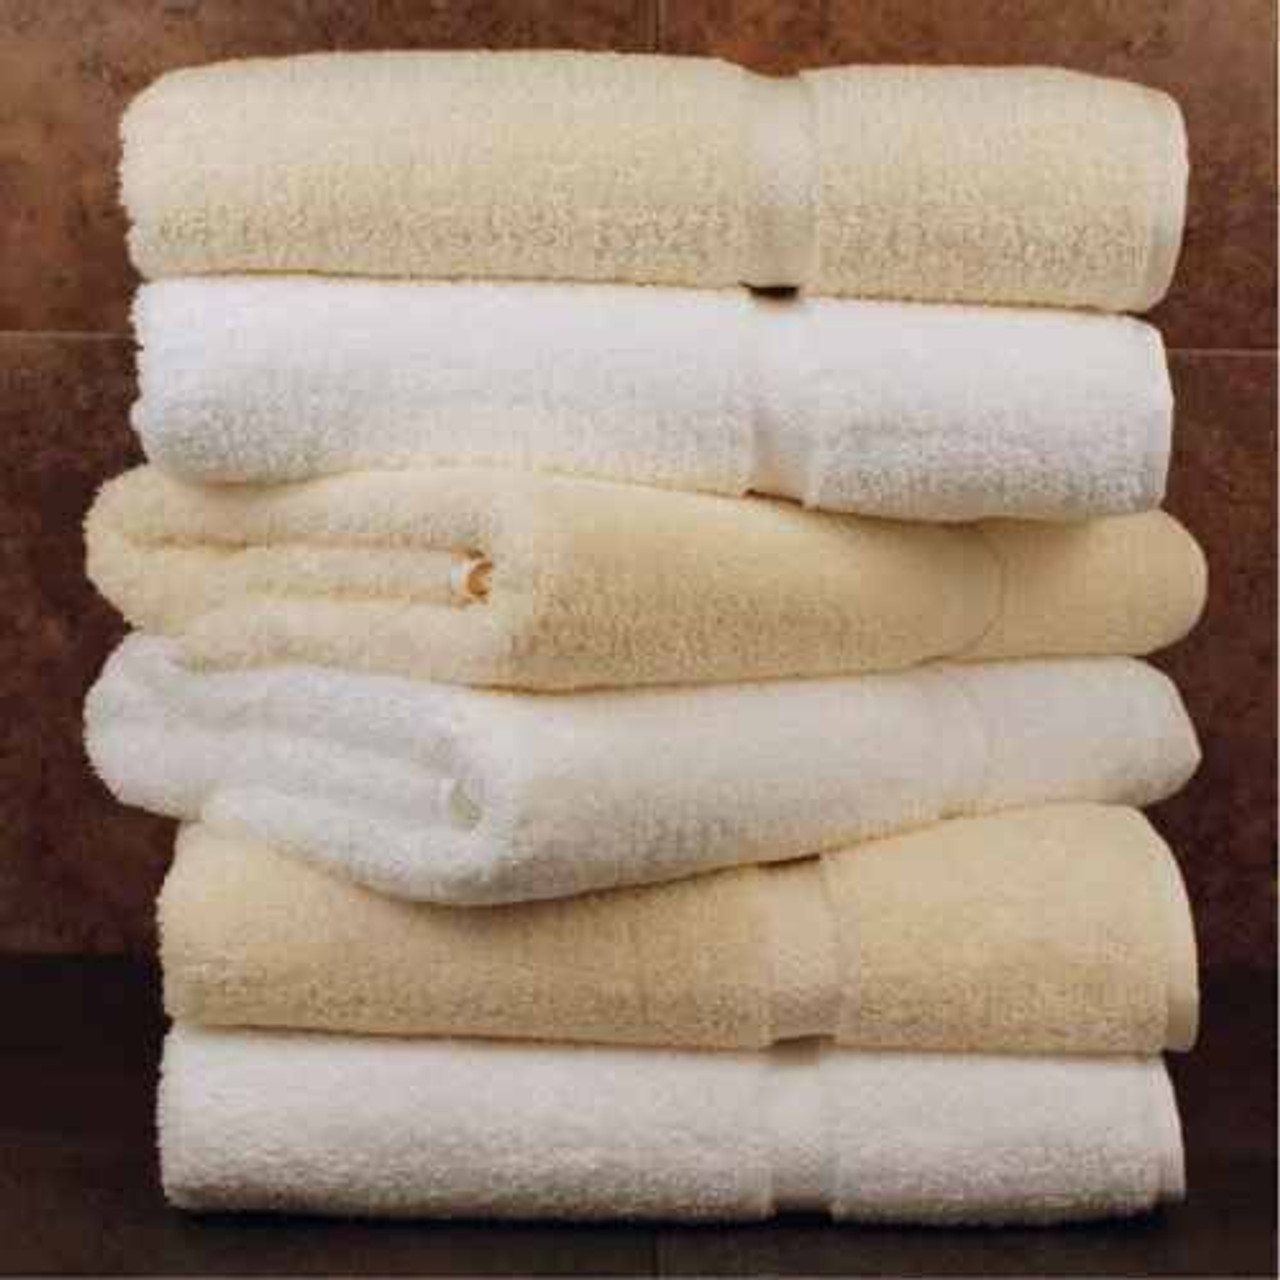 Suite Touch by 1888 Mills 1888 Mills Towels or Suite Touch - Made In USA or Ring Spun